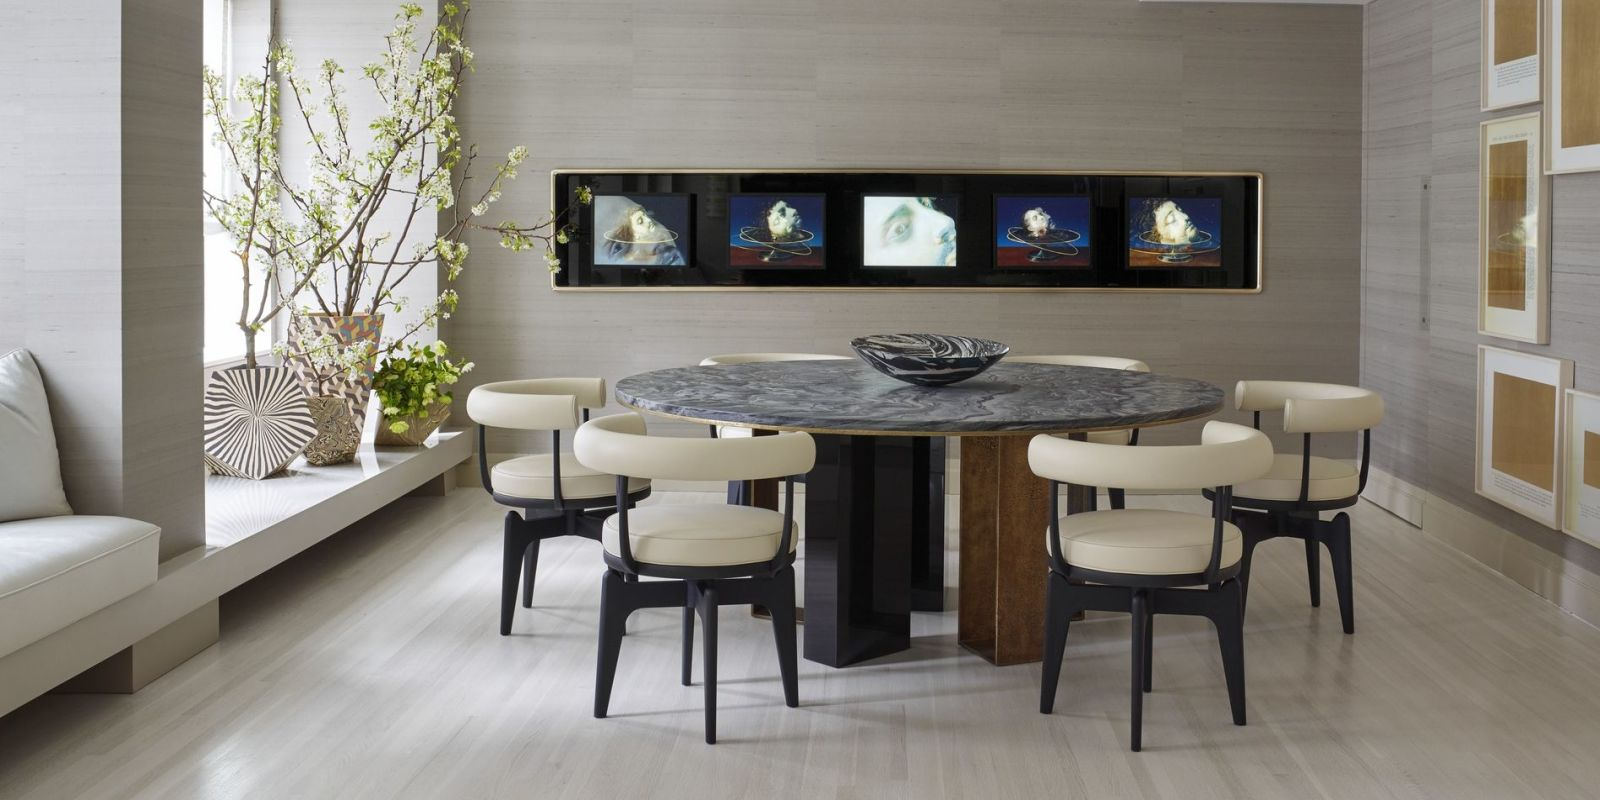 25 modern dining room decorating ideas contemporary for Contemporary dining room ideas